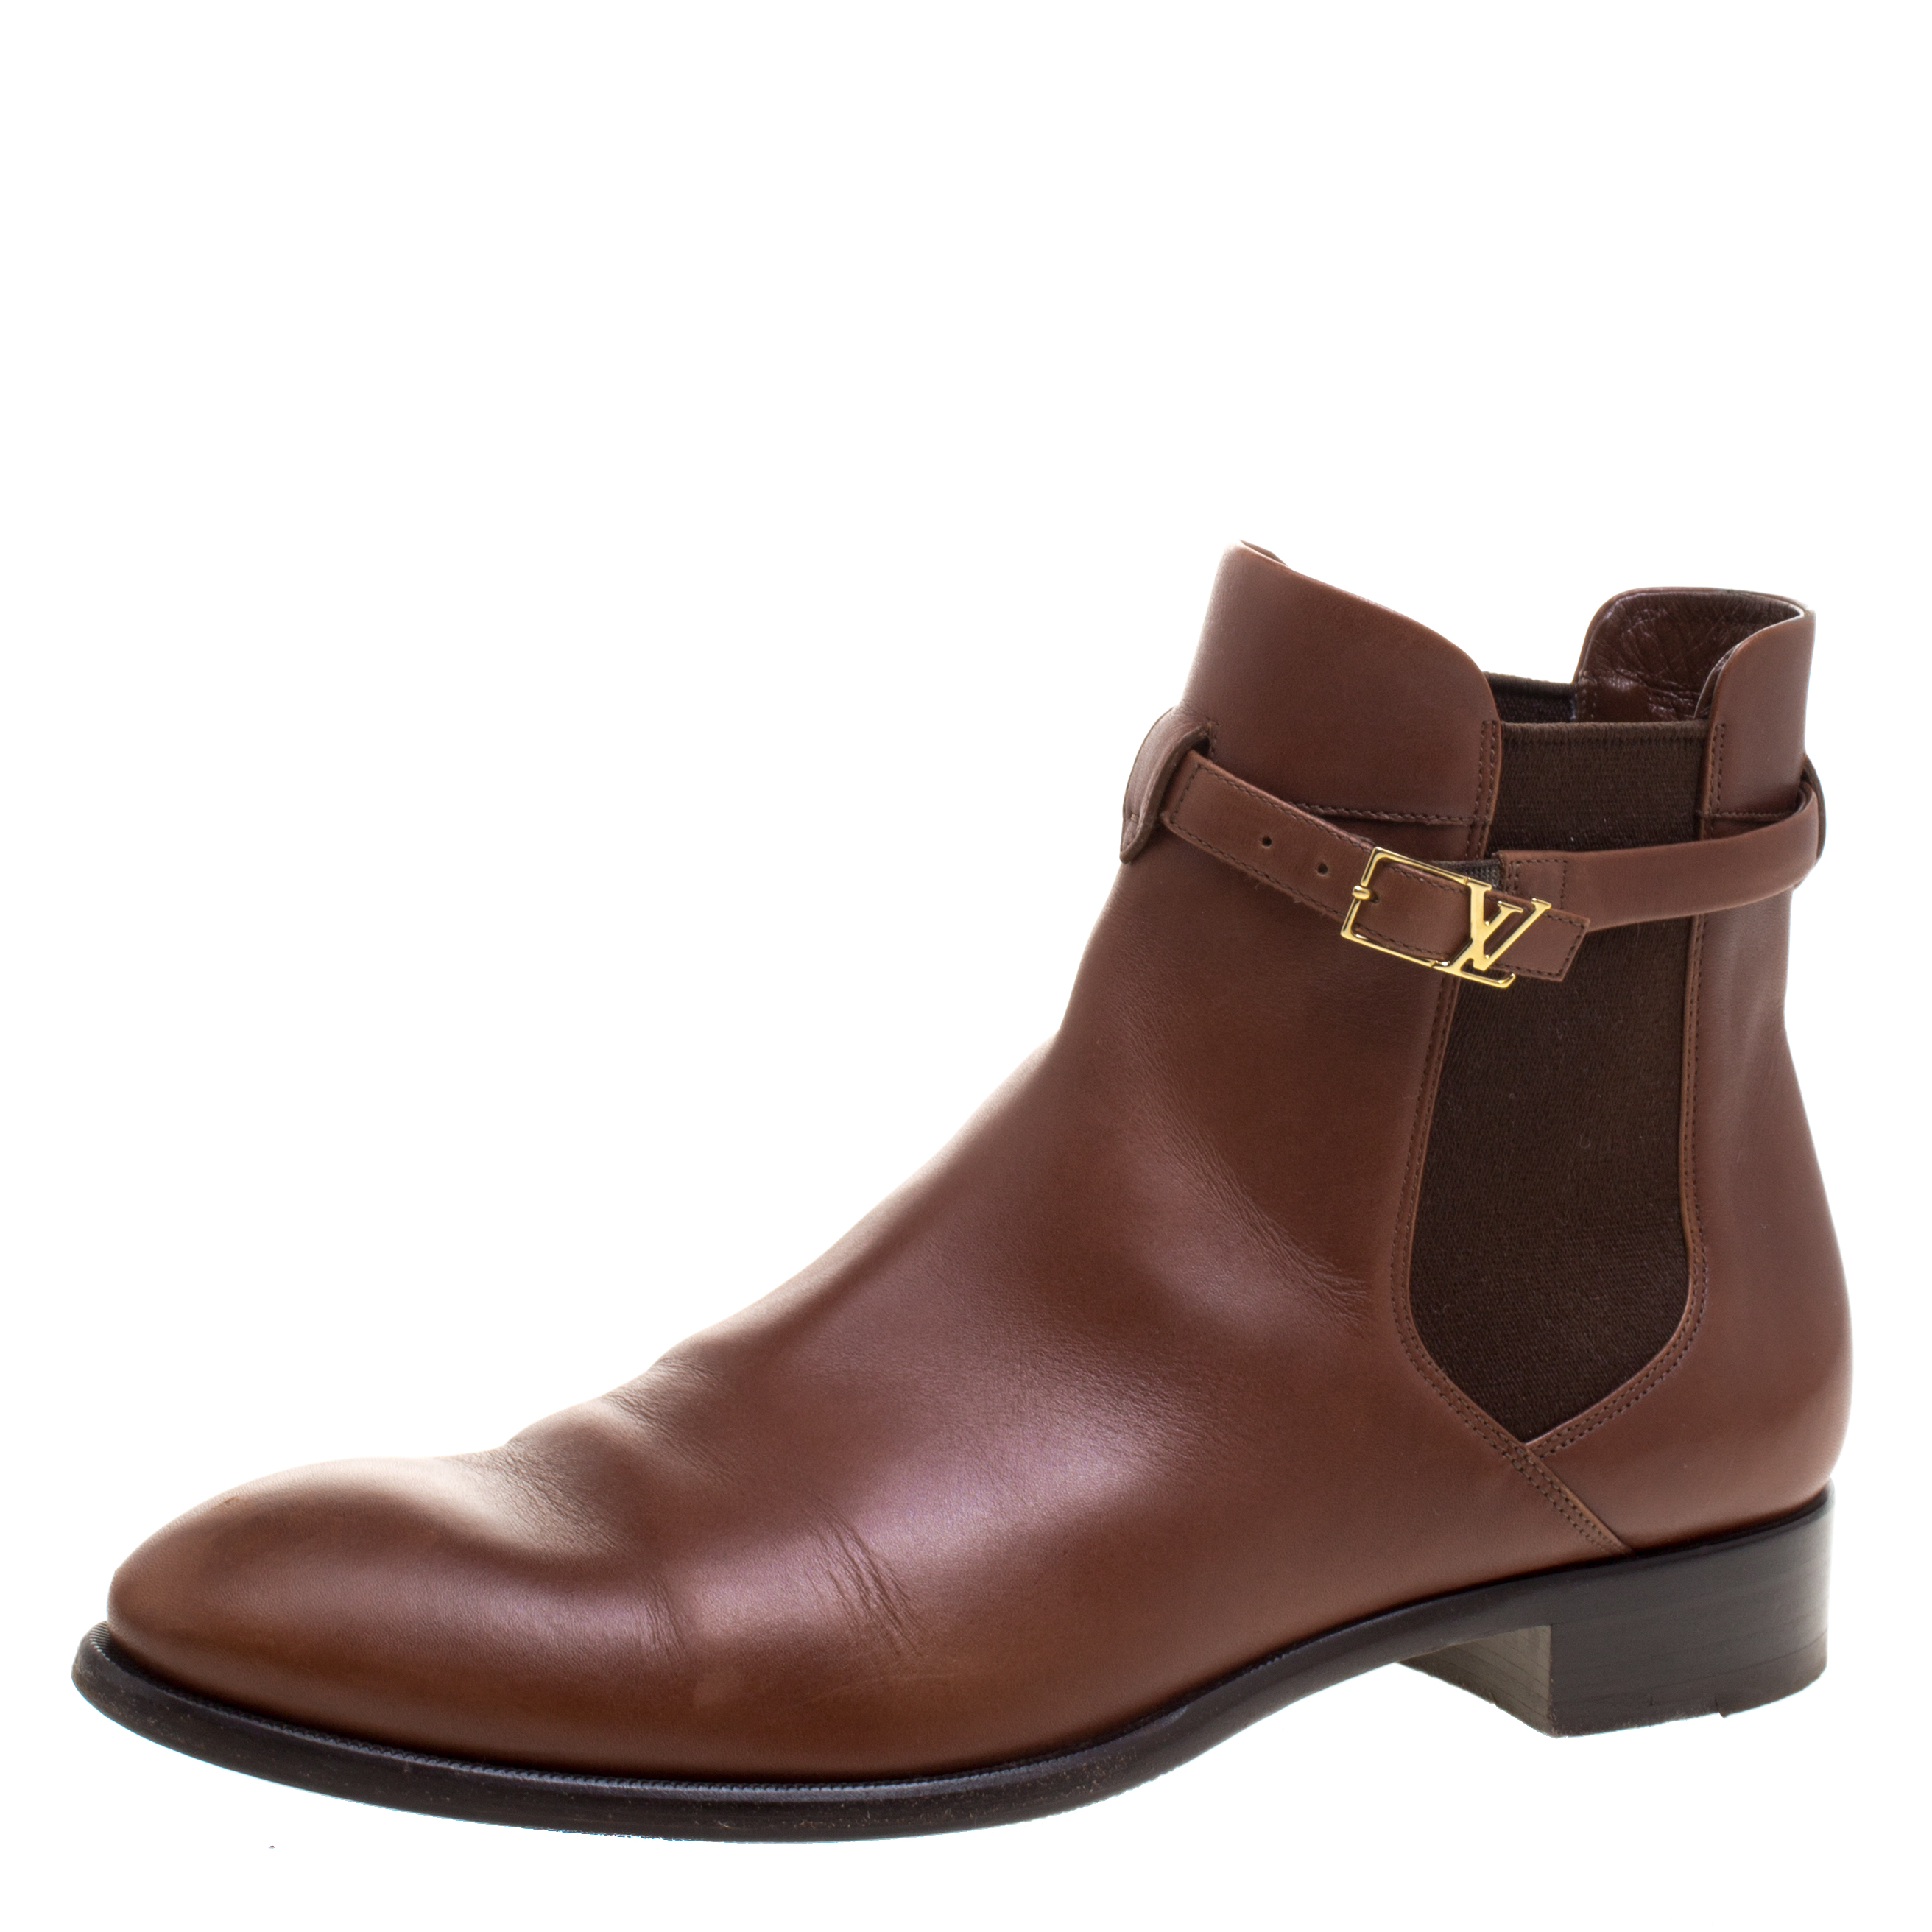 8f70dfaaf6c295 Buy Louis Vuitton Brown Leather Loyalty Ankle Boots Size 41 111228 ...